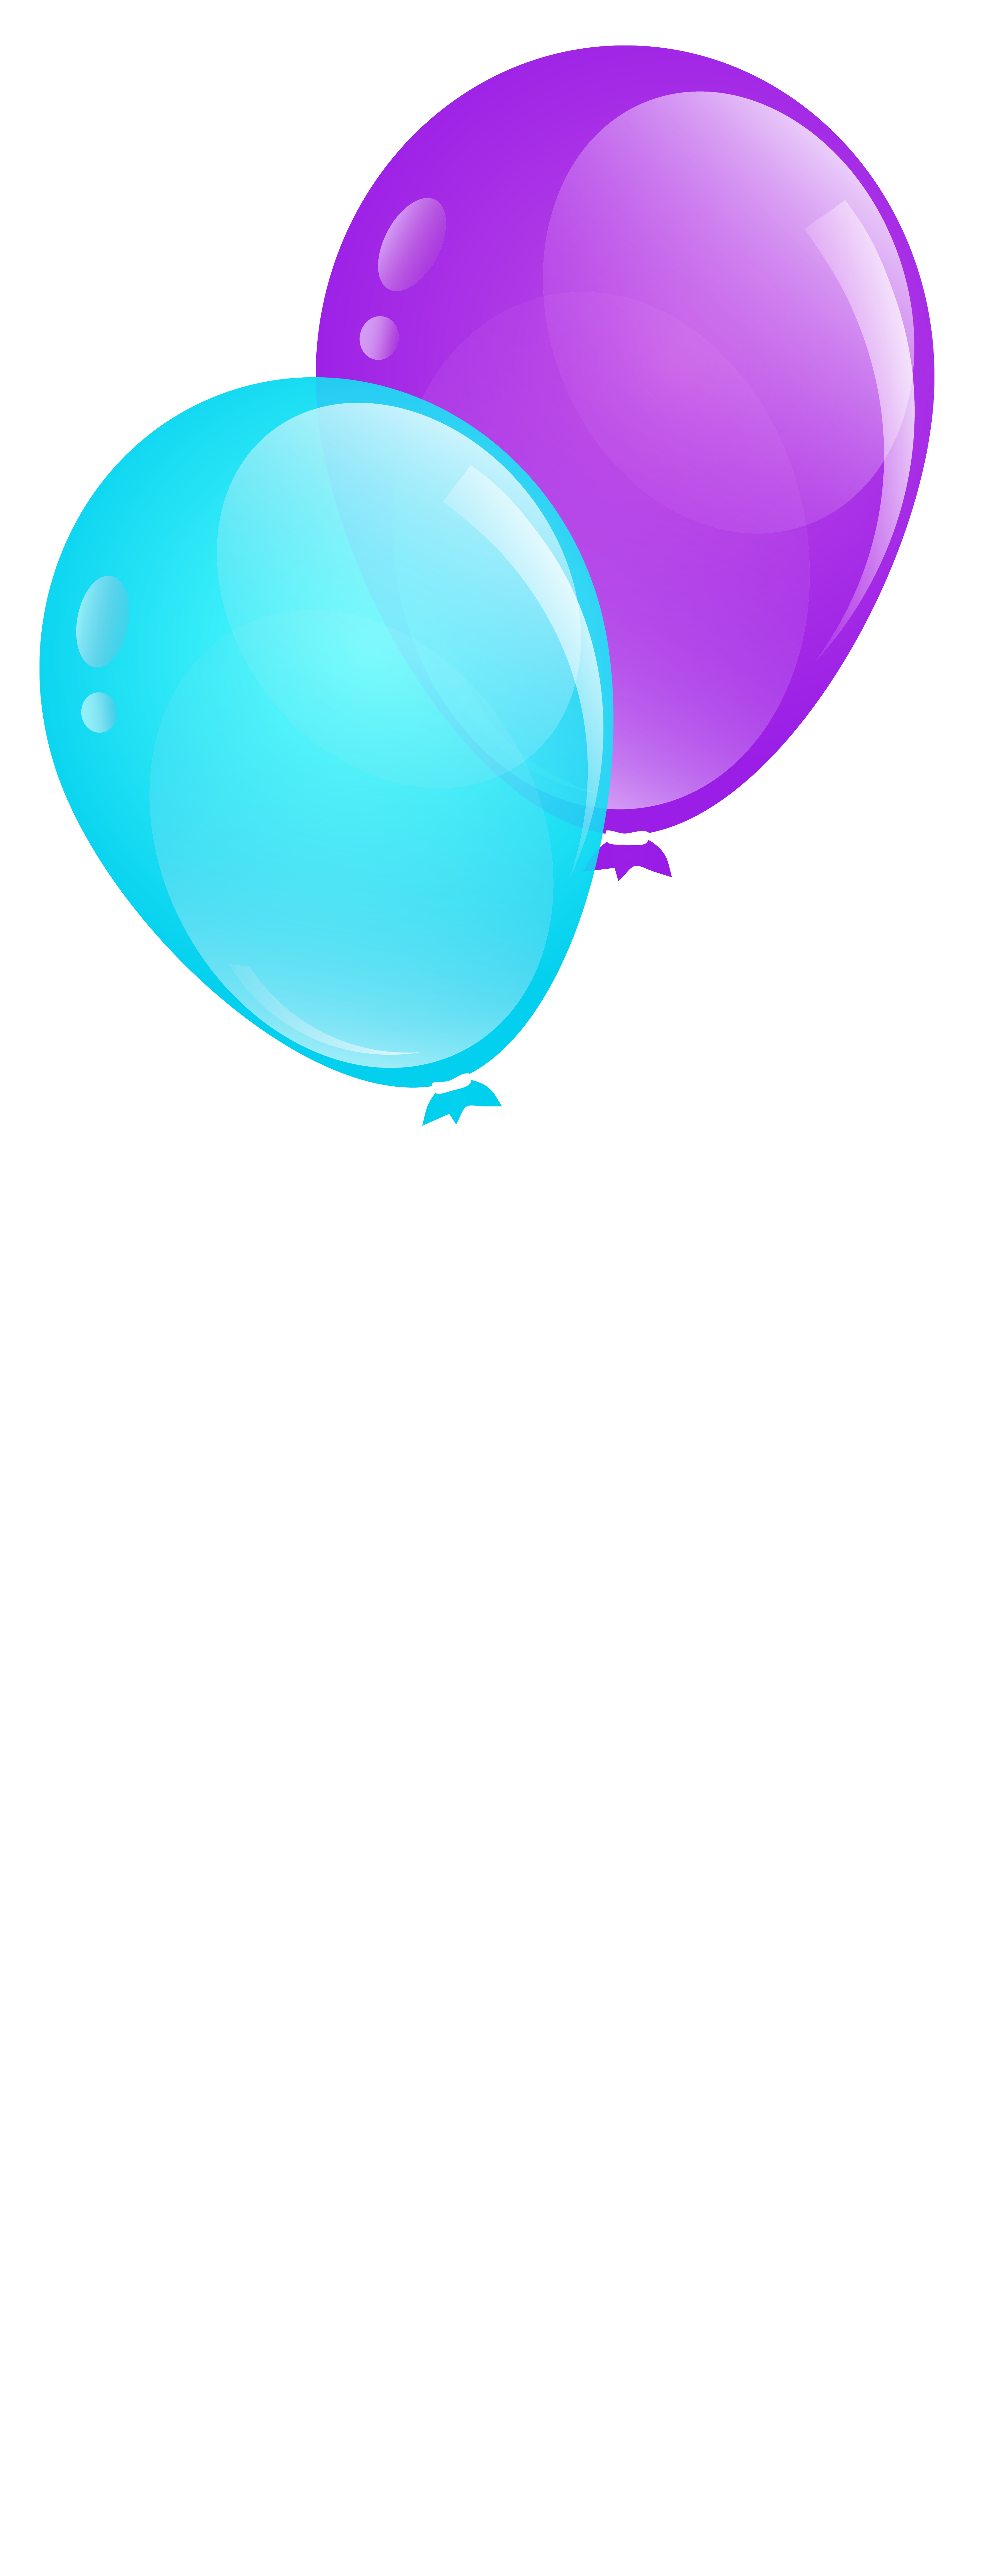 Blue and purple balloons. Clipart balloon gate